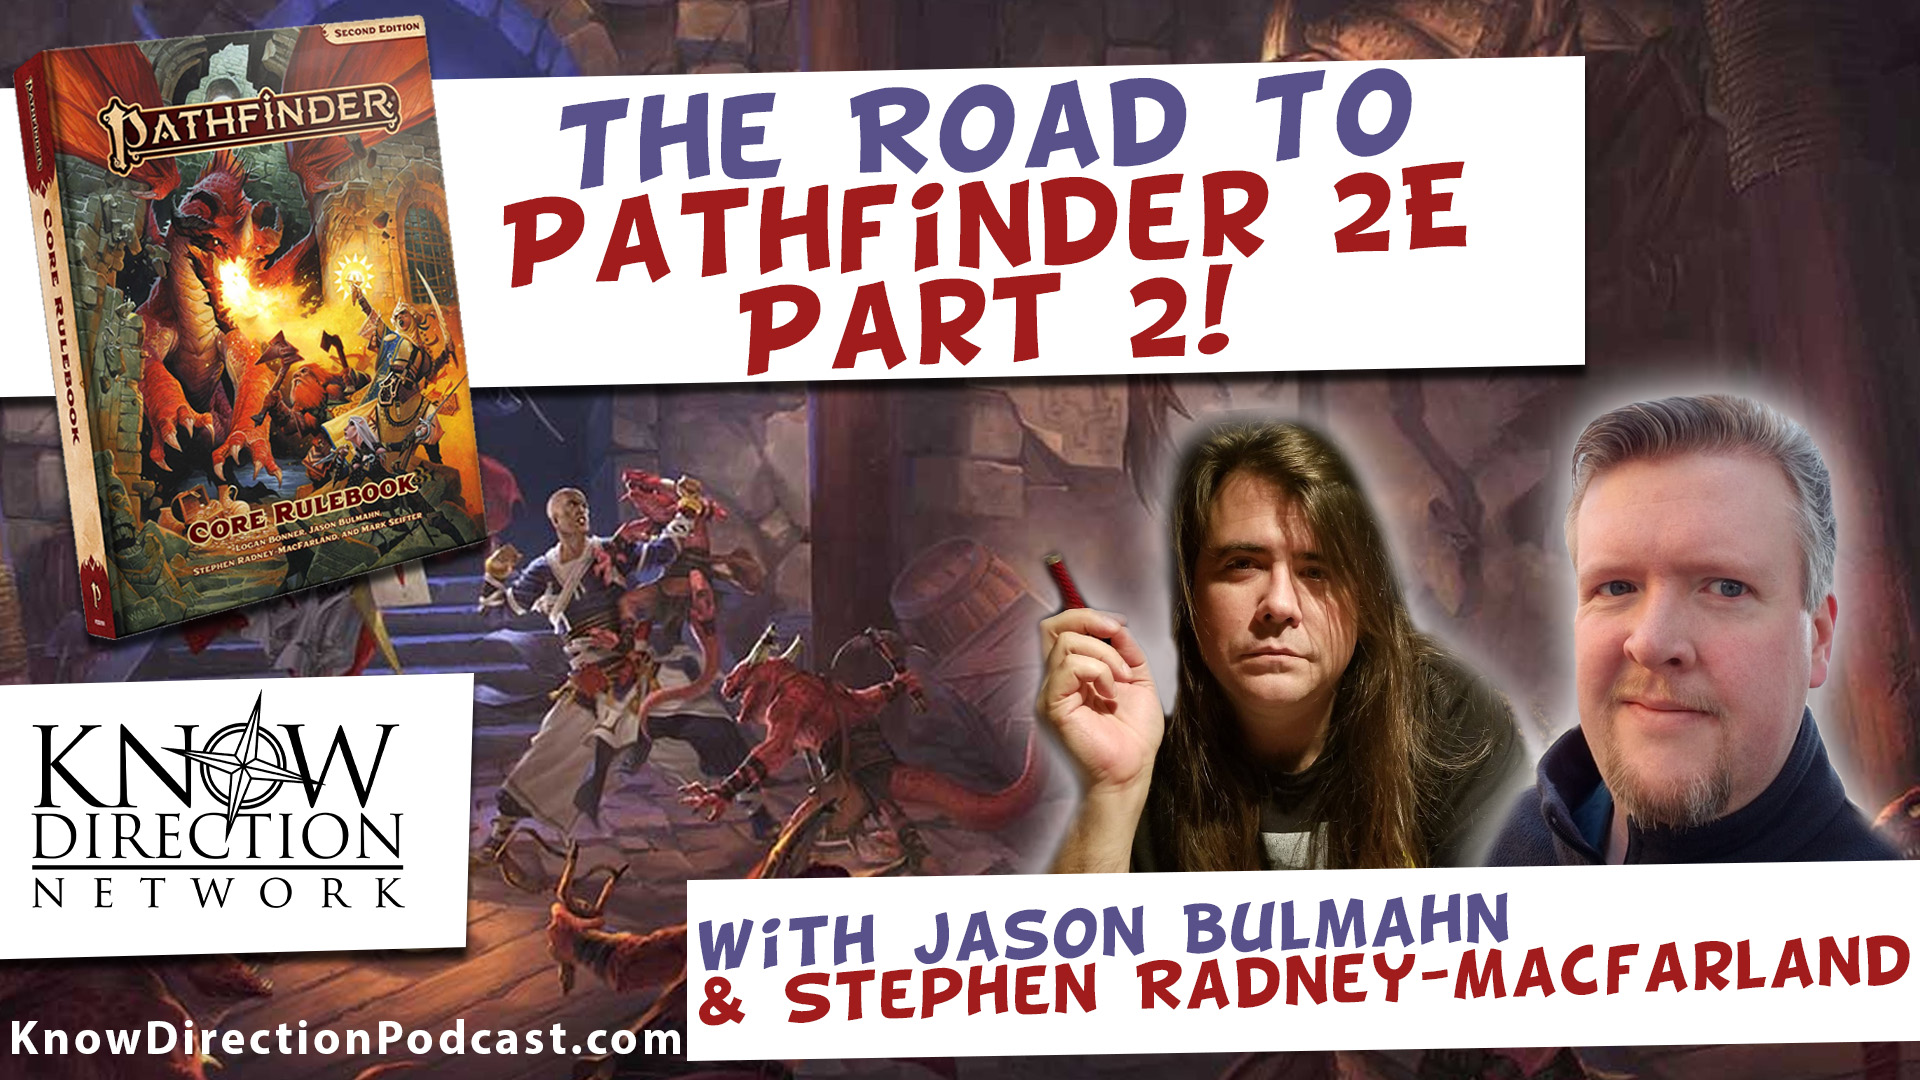 The Road to Pathfinder 2e part 2 with Jason Bulmahn and Stephen Radney-Macfraland